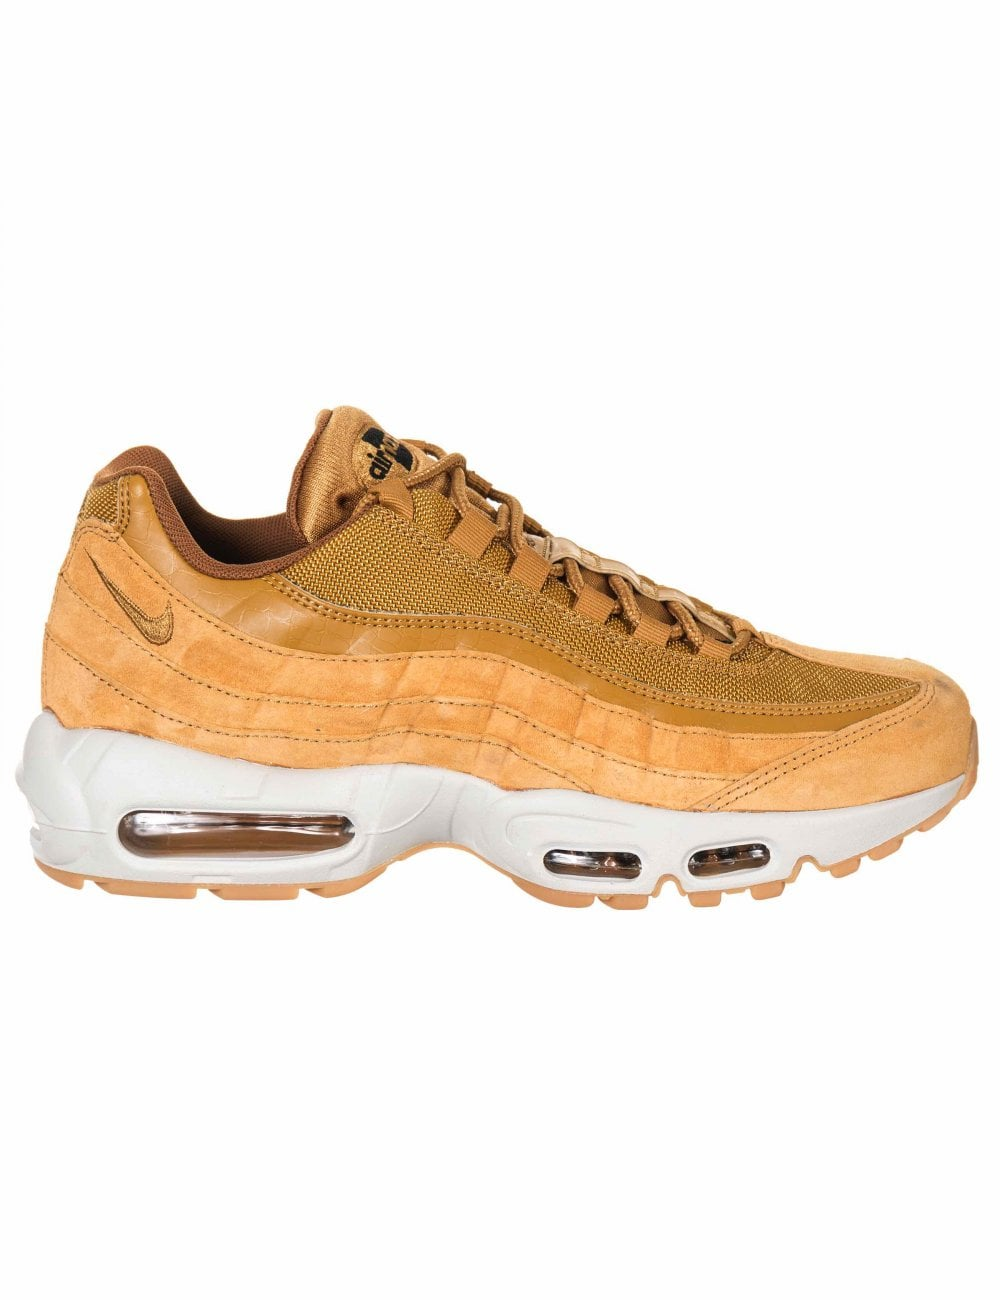 09023b6b4d4 Air Max 95 SE Trainers - Wheat Wheat